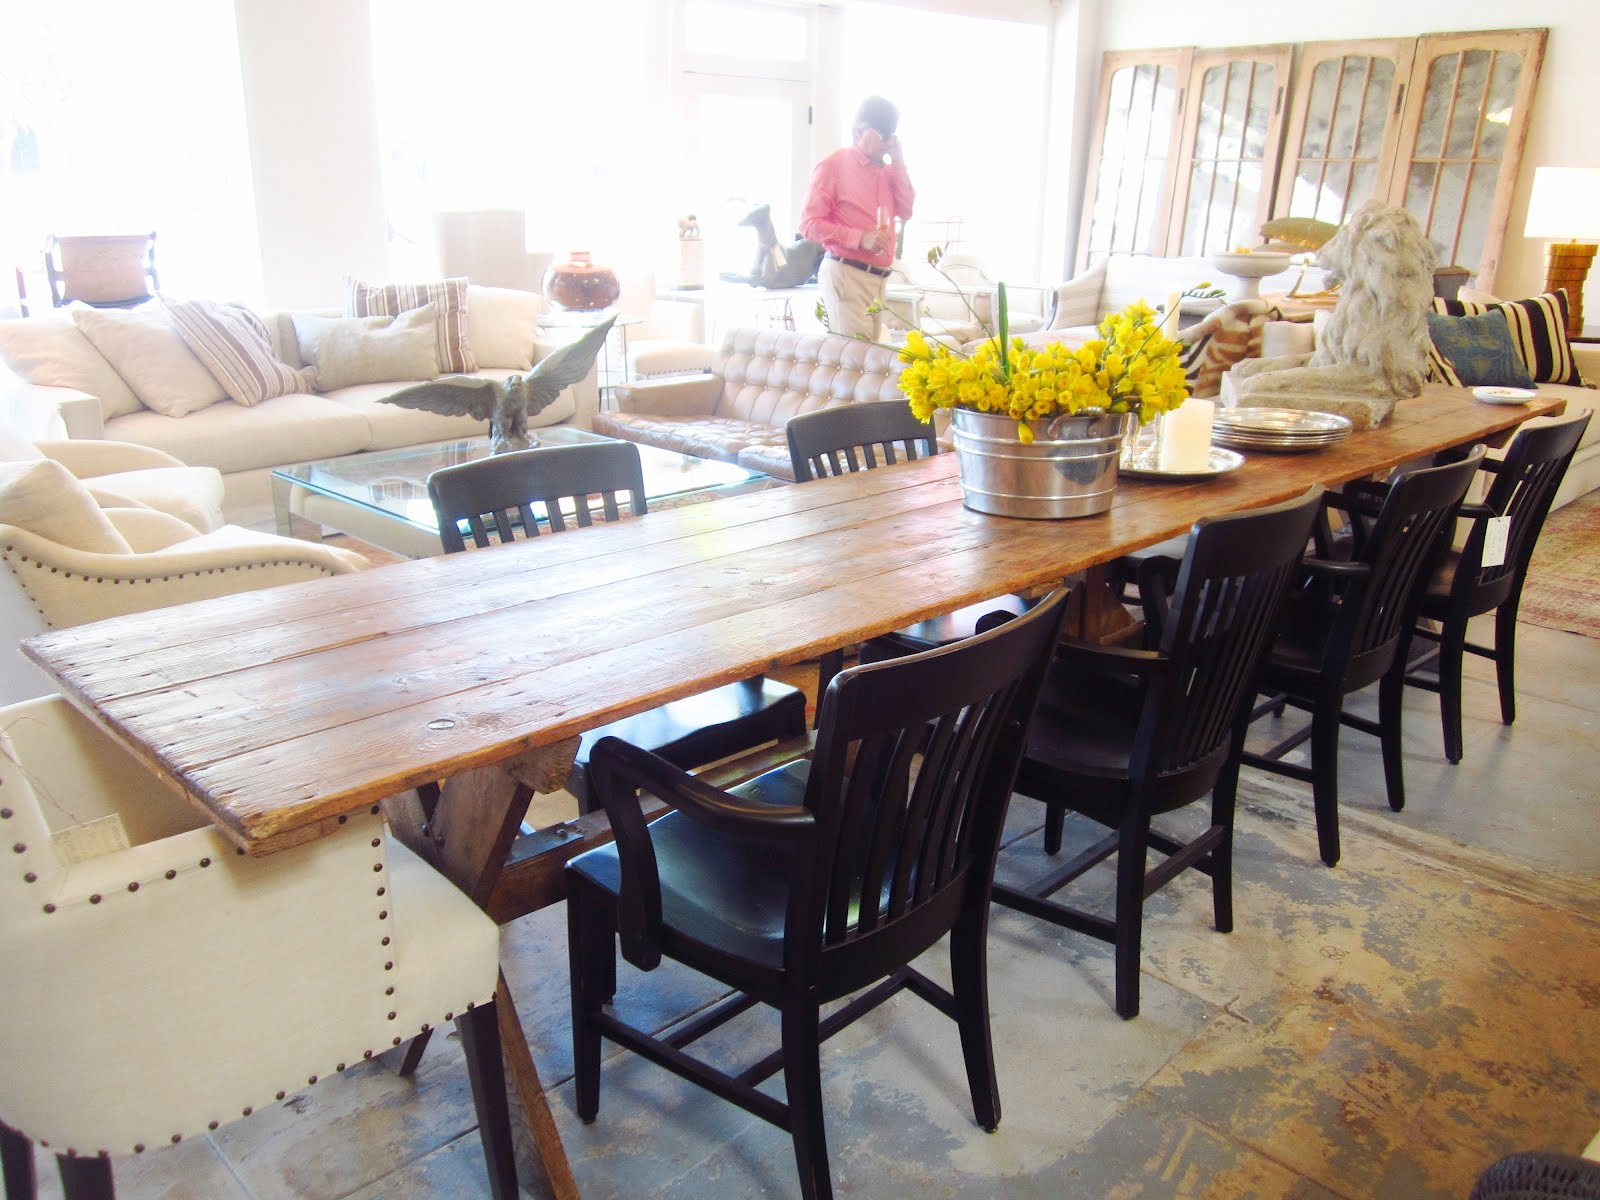 Mitchell co custom furniture f a q 39 s for 10 seater farmhouse table